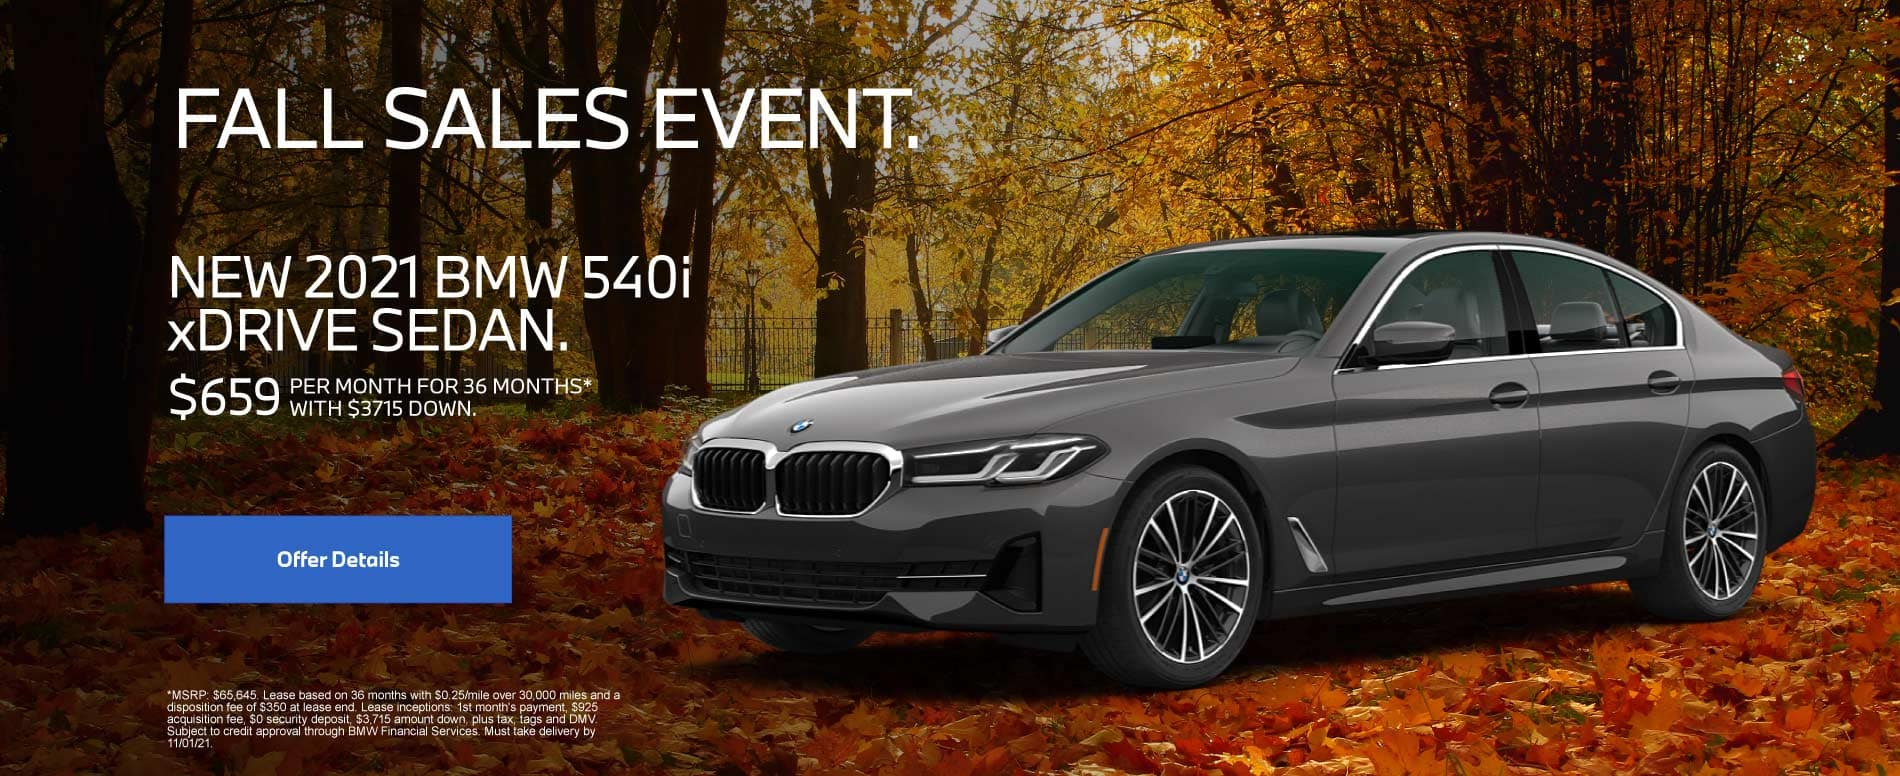 Fall Sales Event. NEW 2021 BMW 540i xDRIVE SEDAN $659 PER MONTH FOR 36 MONTHS* WITH $3715 DOWN.